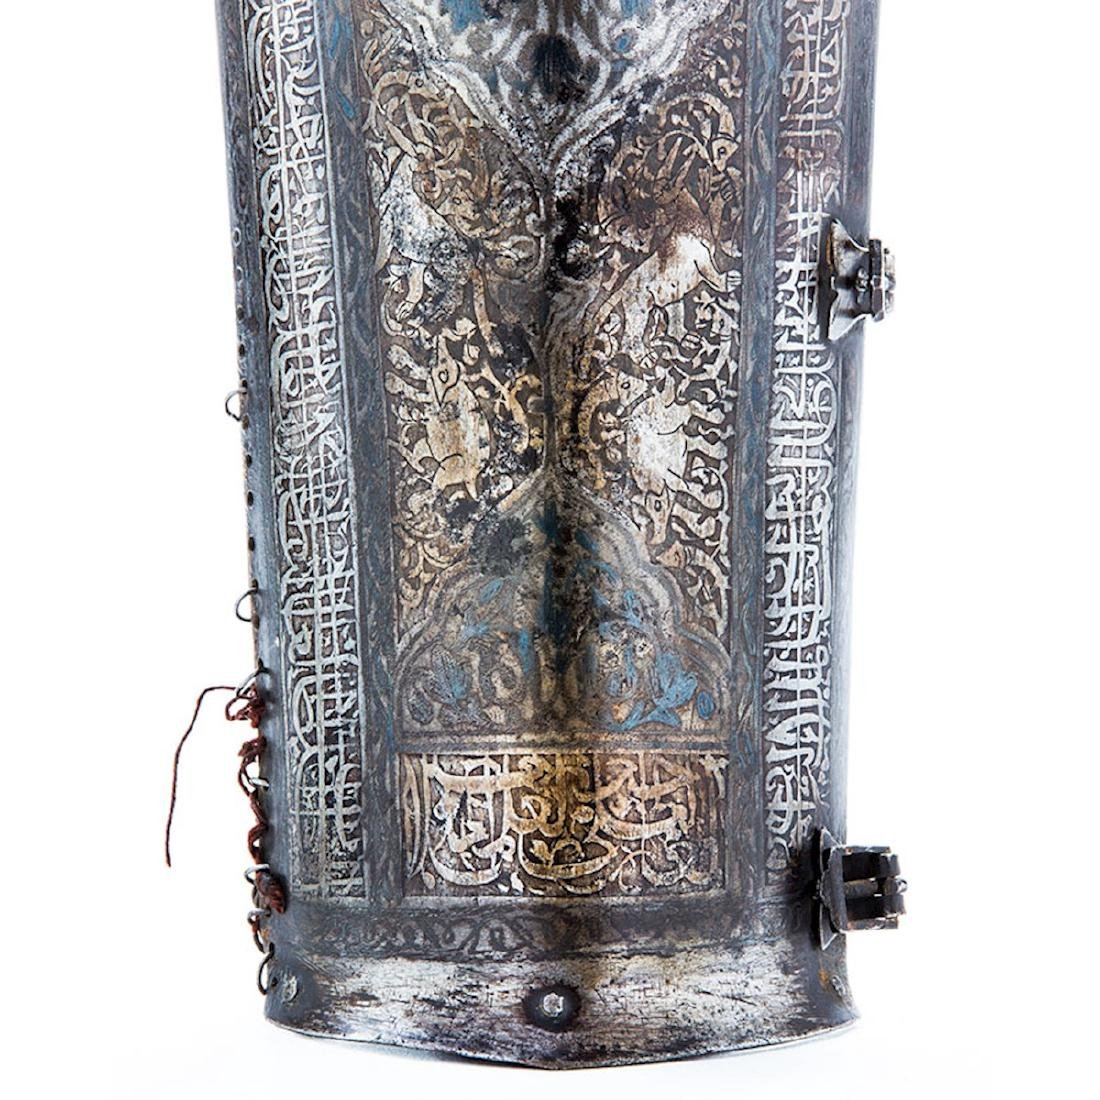 BAZU BAND WITH ETCHING, PERSIA, 19 C. - 3